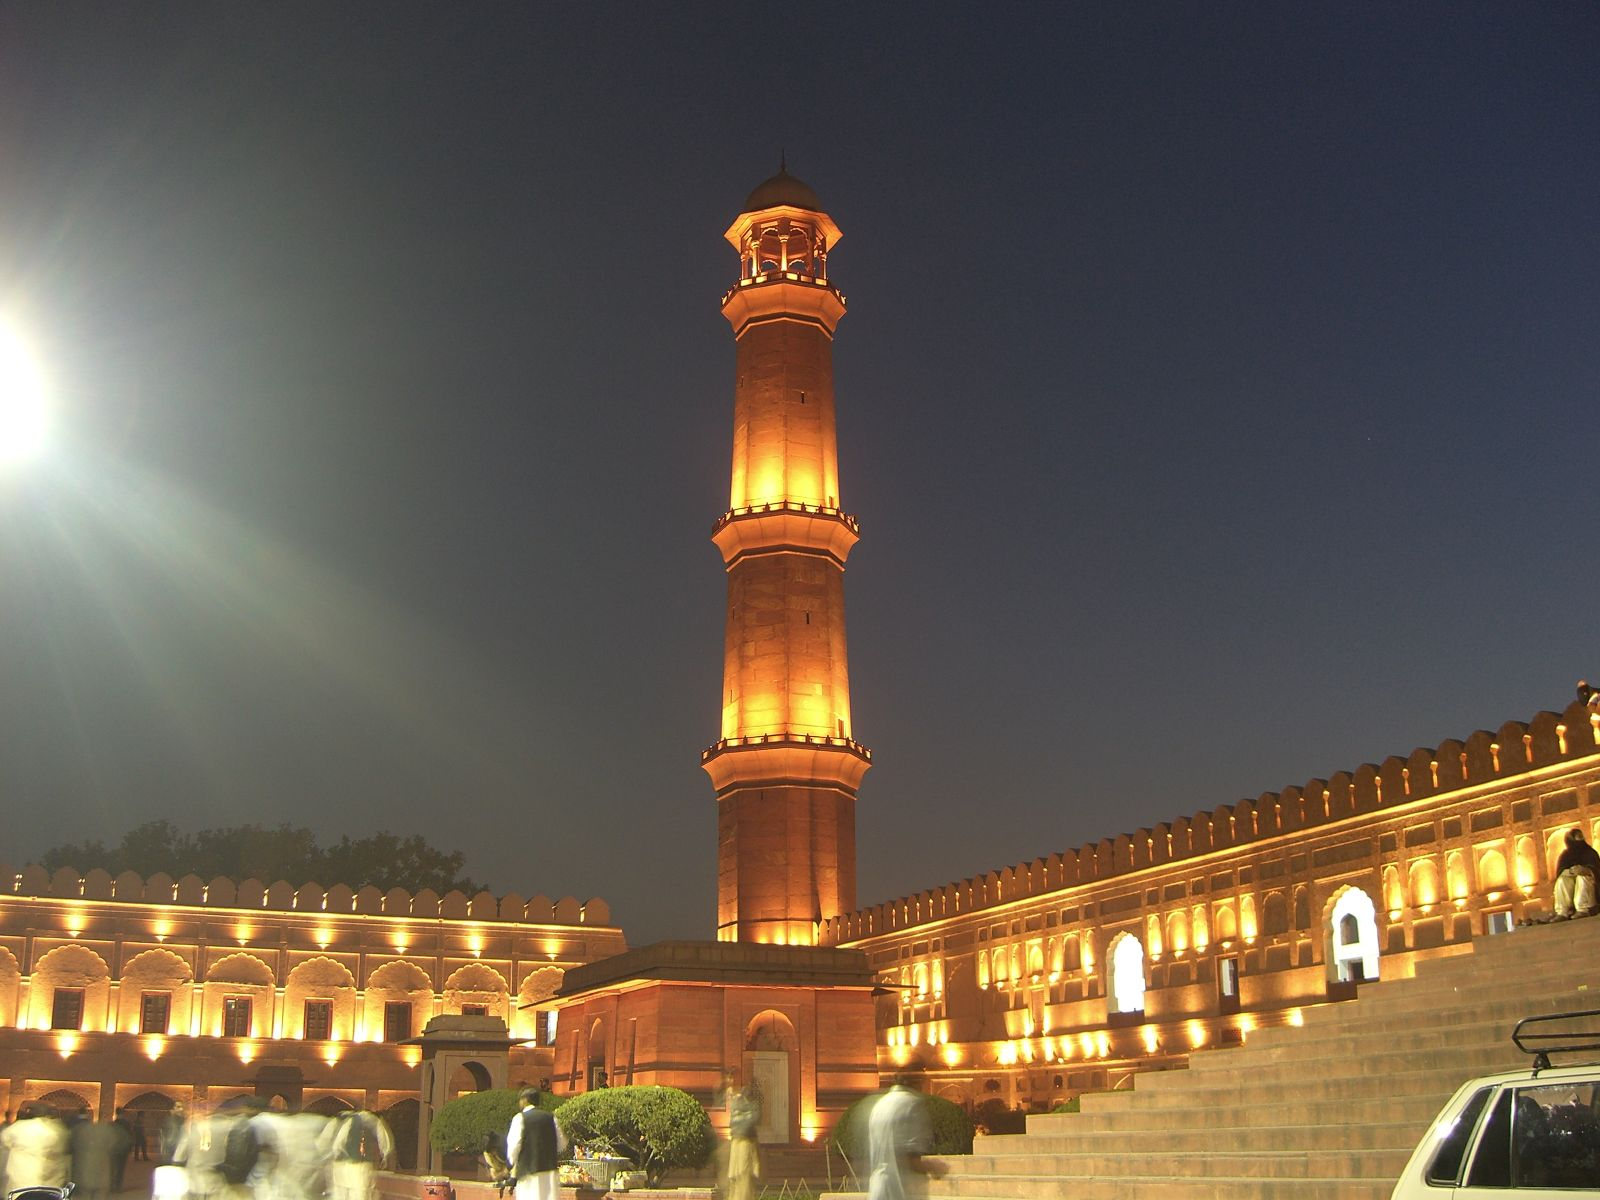 Badshahi_Lahore_Night.jpg (1600×1200)